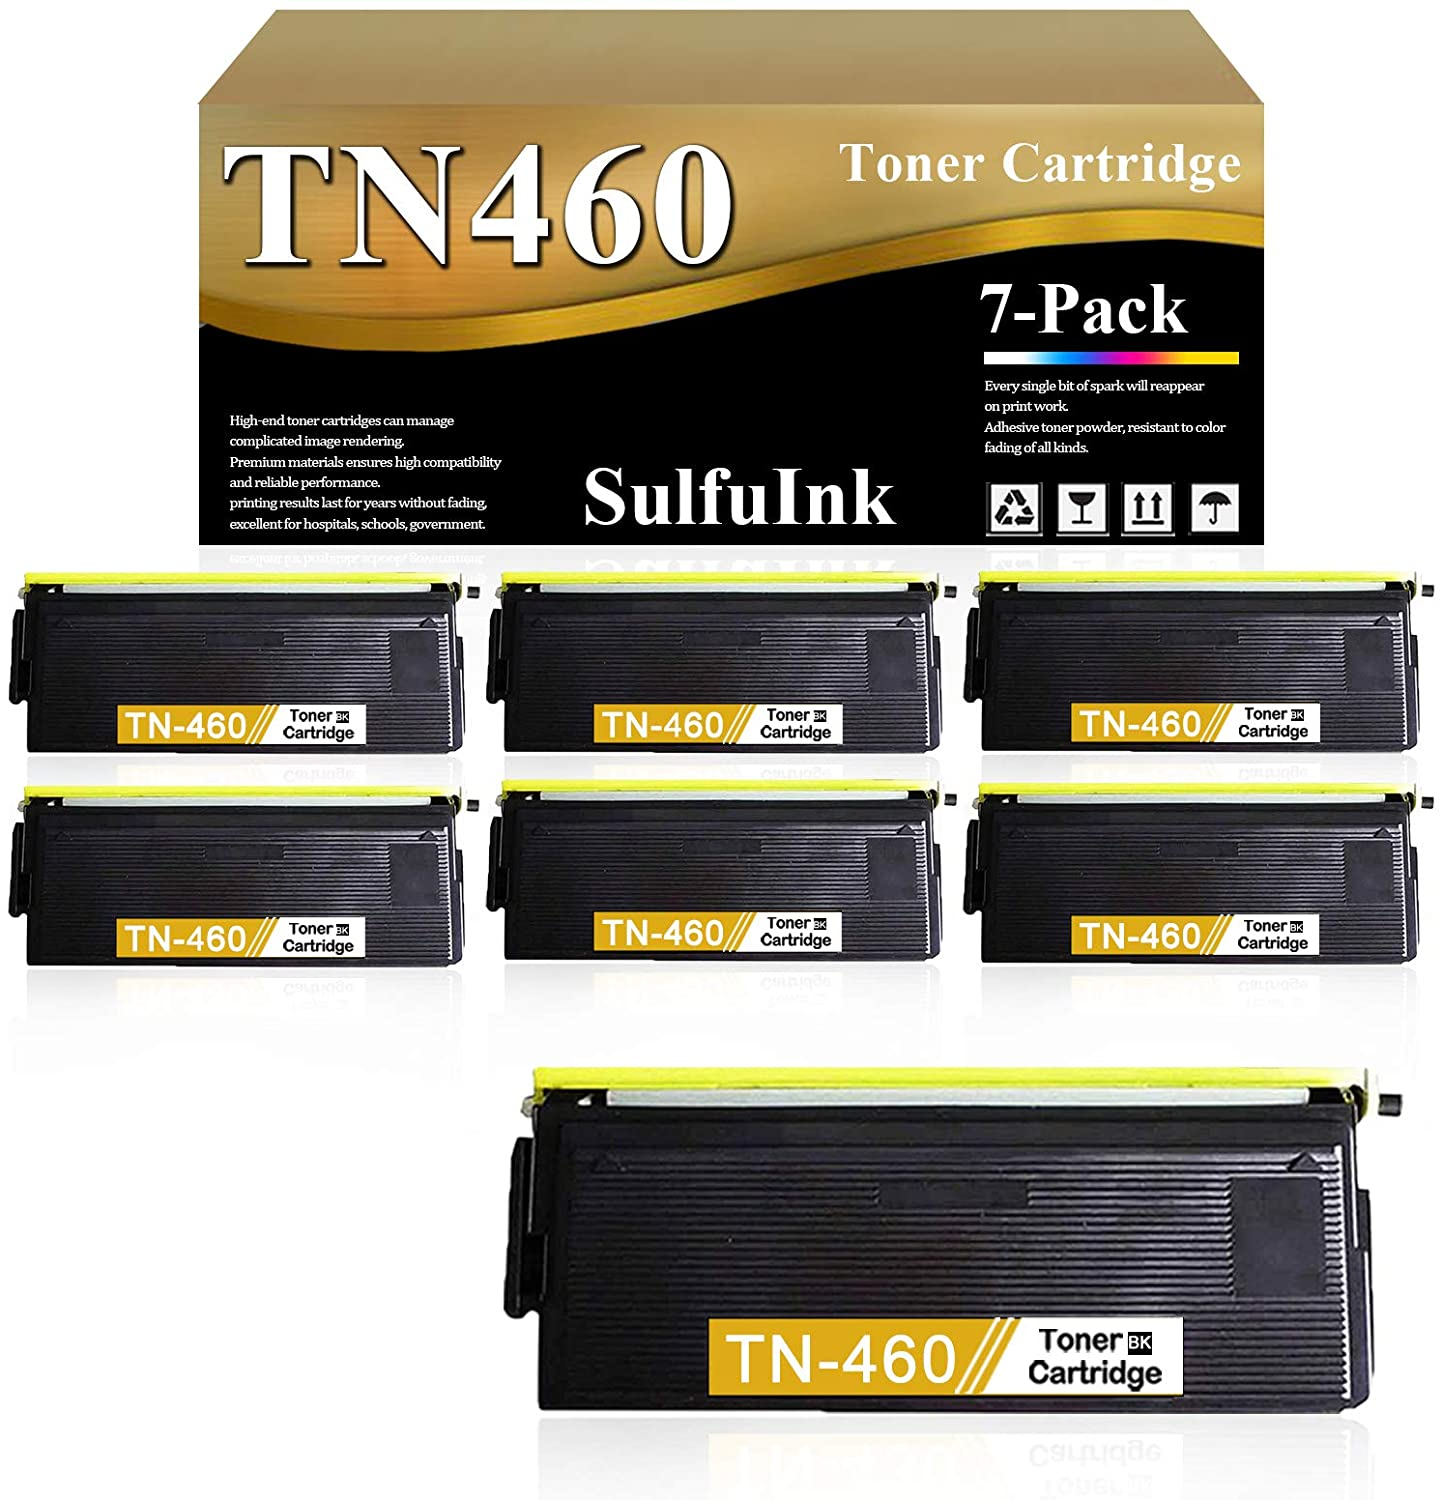 Compatible TN460 TN-460 Toner Cartridge (Black,7-Pack) Replacement for Brother HL 1200 1250 1240 8350P 1440 1430 9650 1650 1850 MFC 2500 8300 5750 8700 DCP 1200 1400 Laser Printer Toner Cartridge.